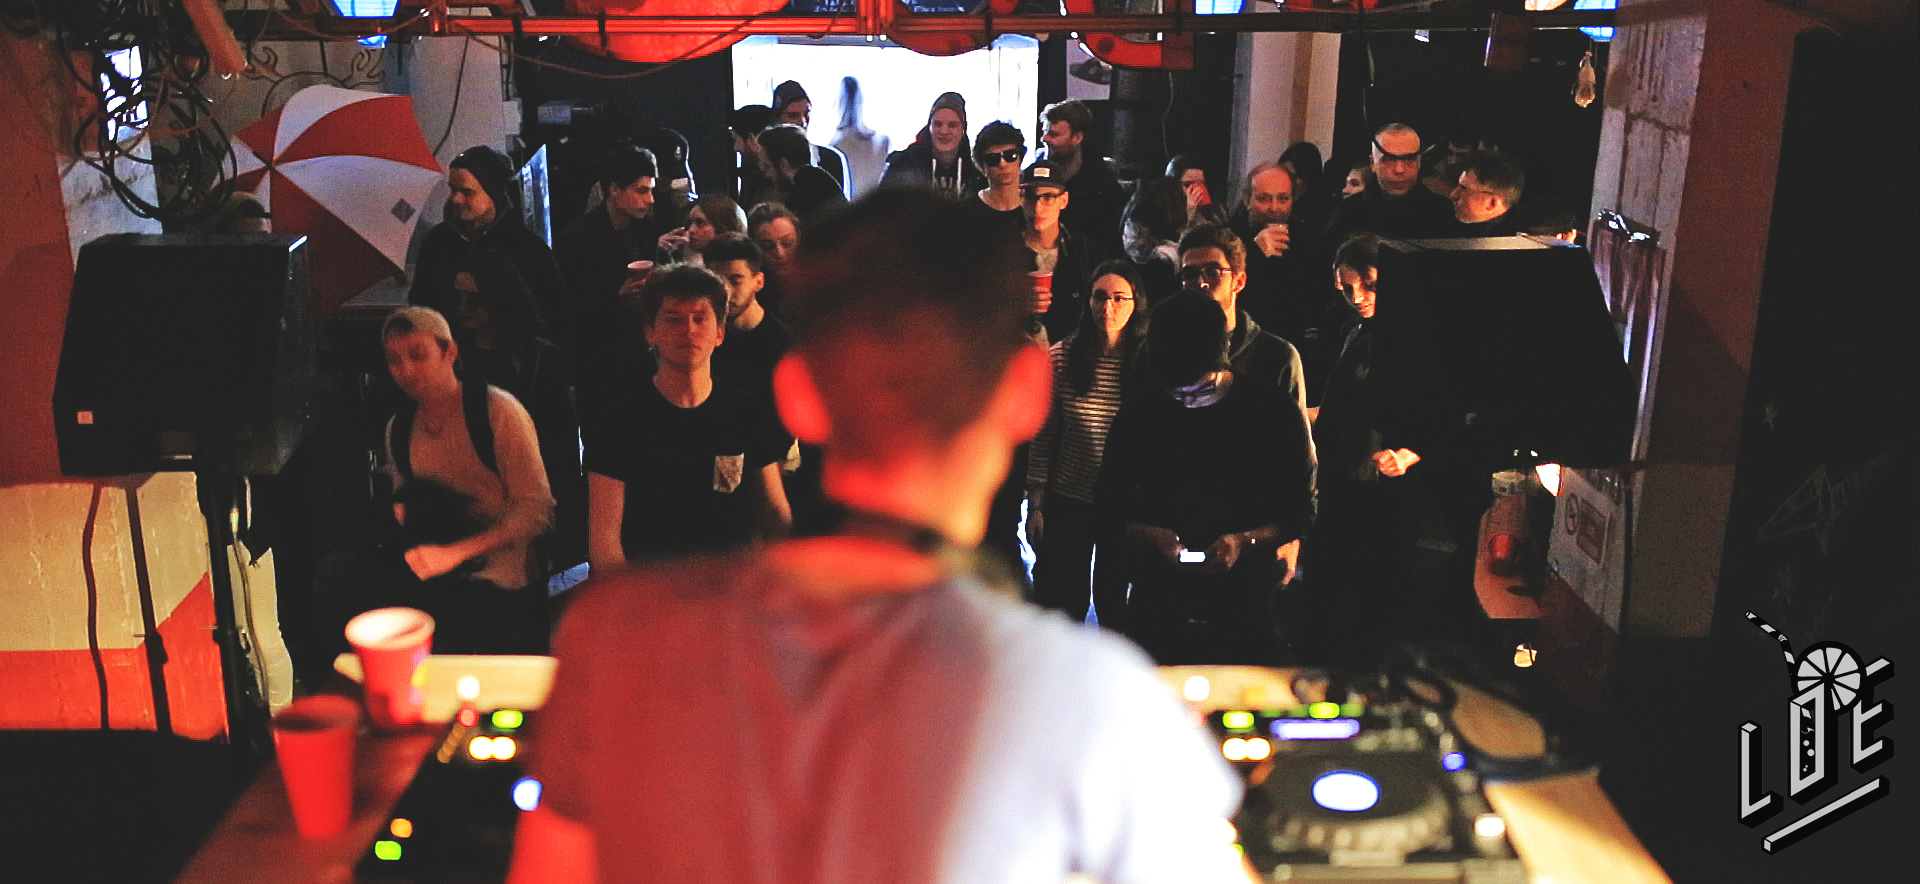 Berlin joins Caen for Les Dimanches Electroniques (Electro Sundays)